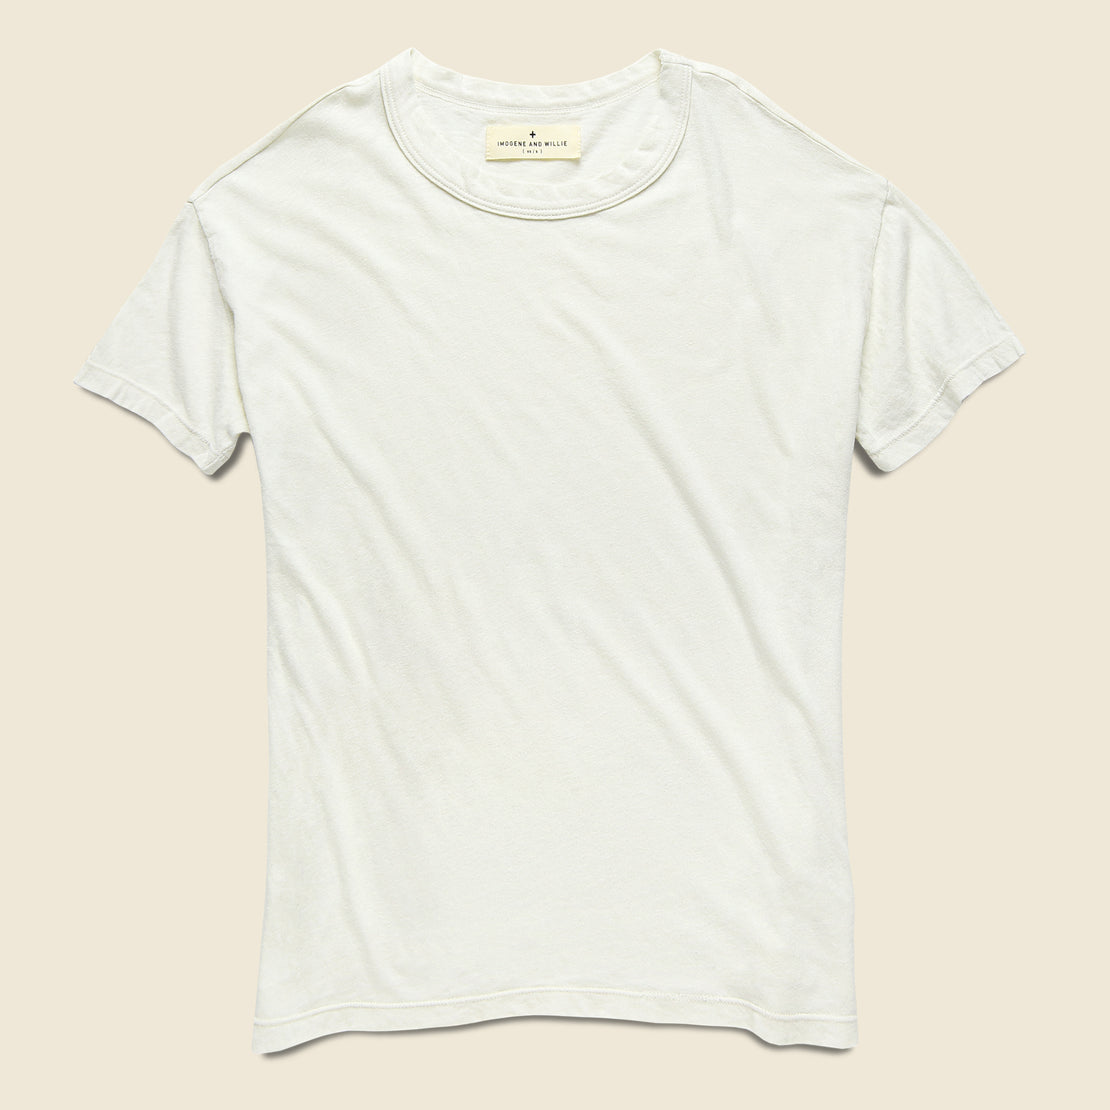 Imogene + Willie Drop Tee - White